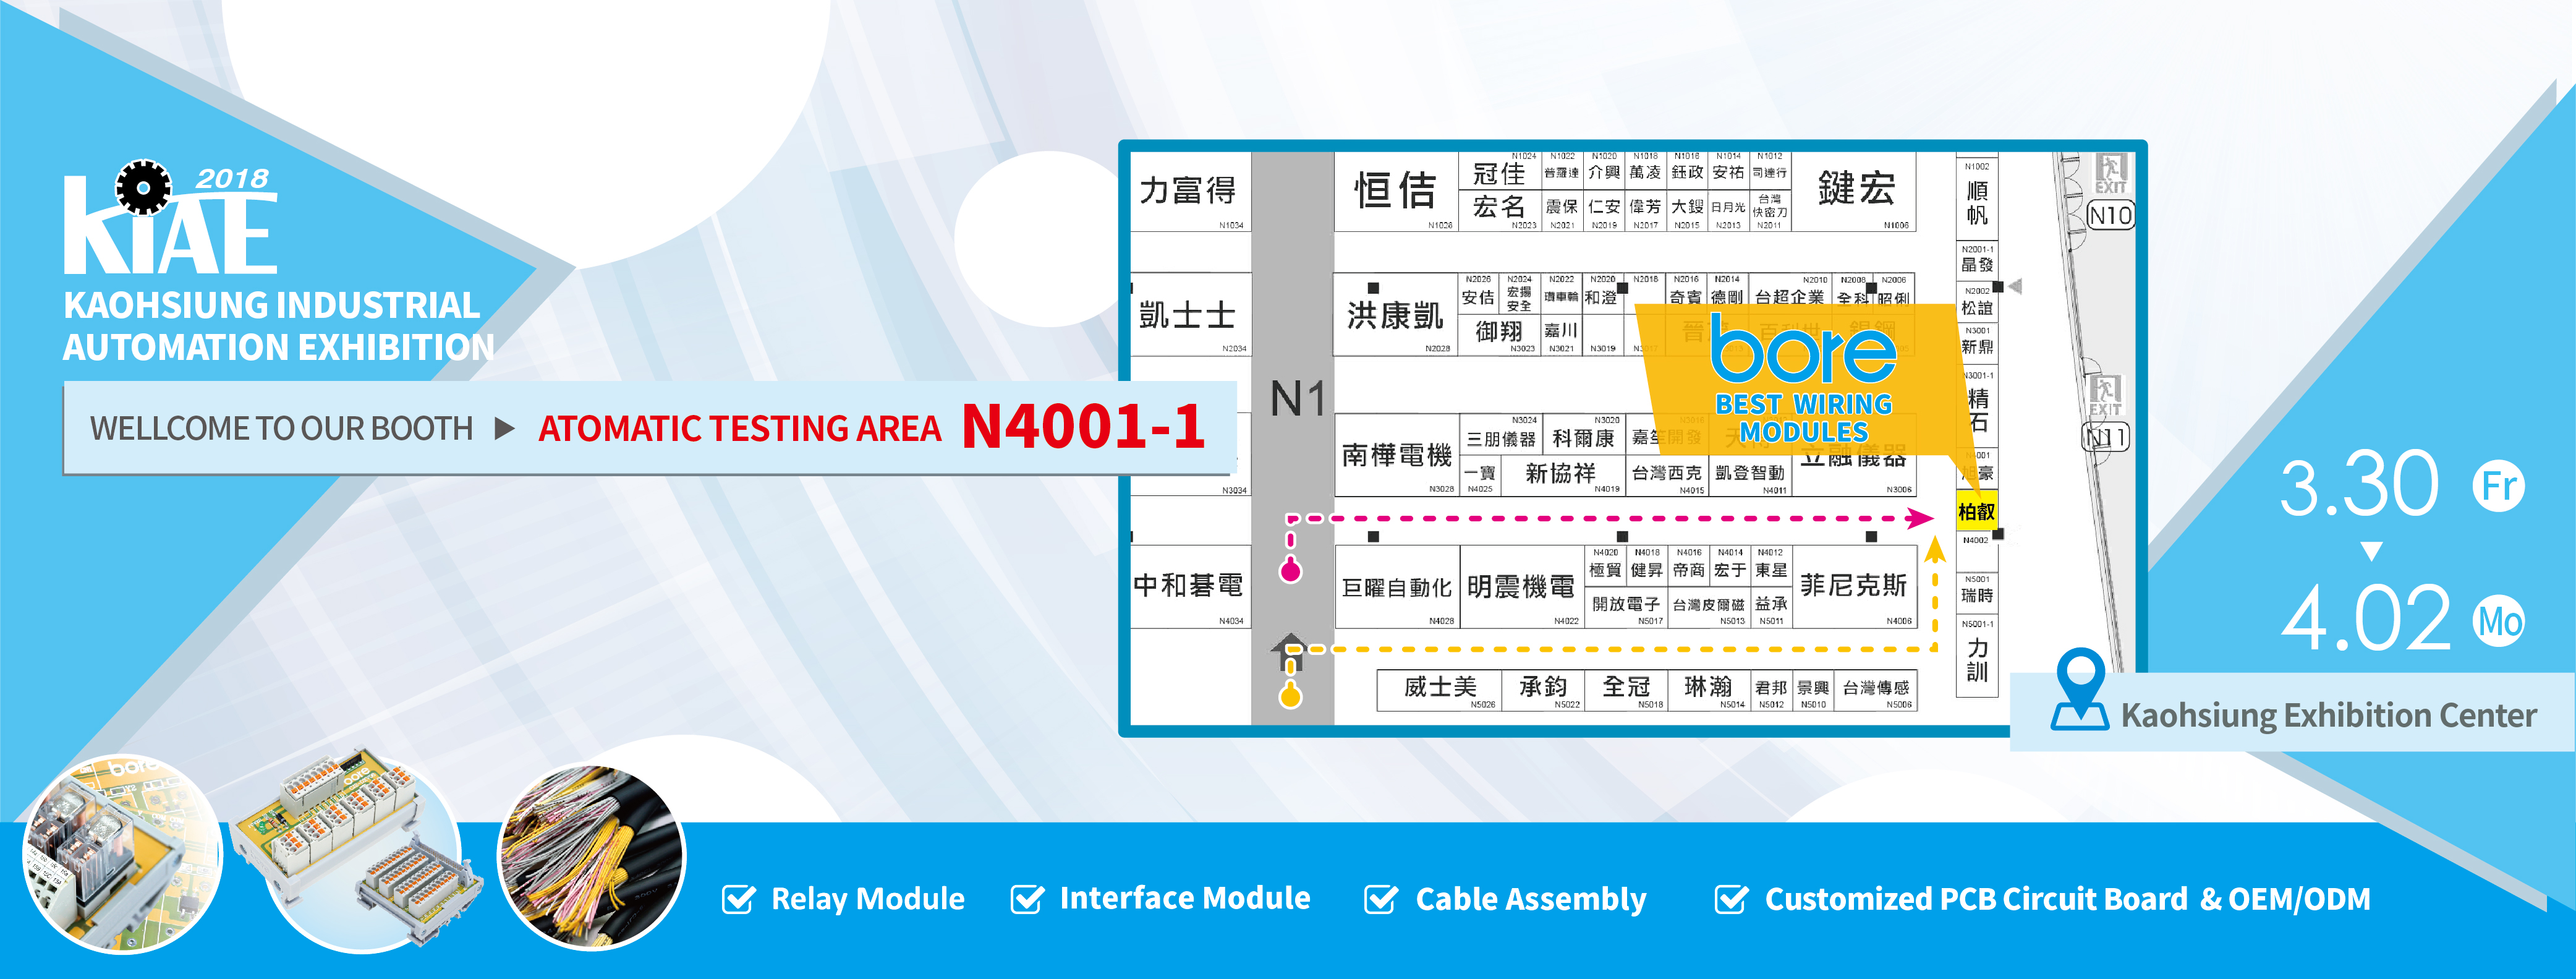 bore2018Kaohsiung International Automation Ex.